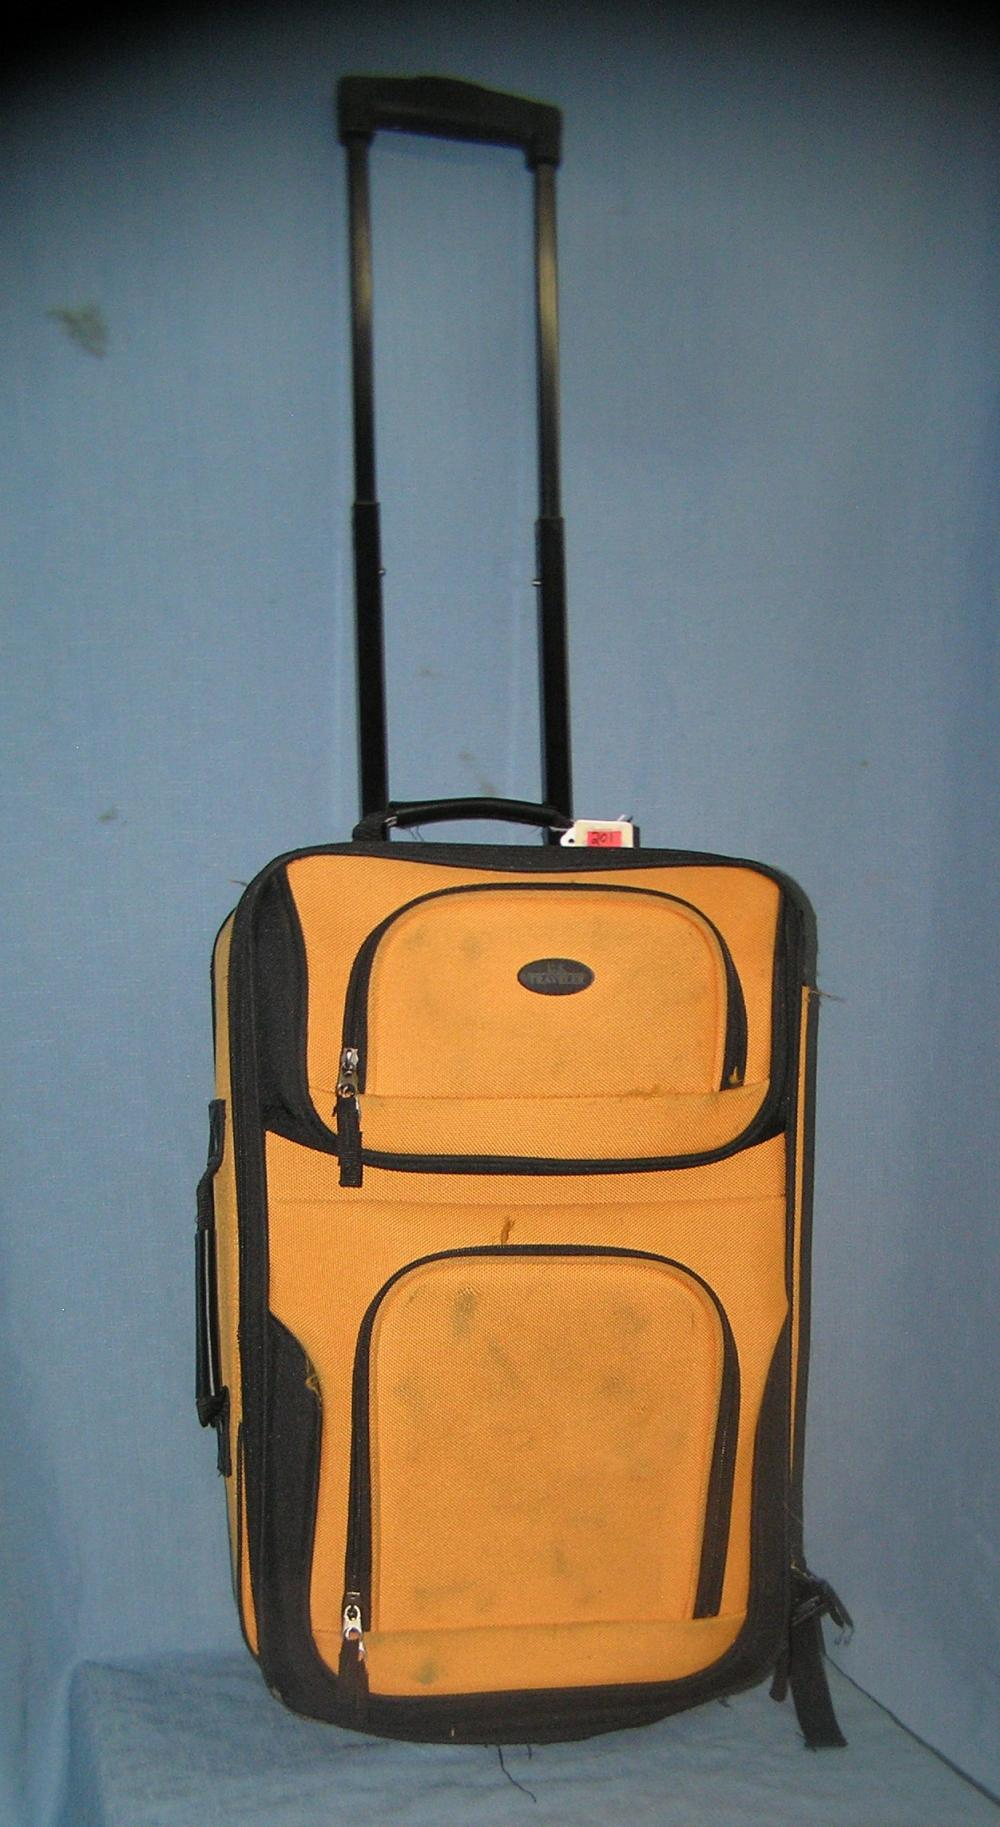 US TRAVELER MODERN CANVAS LUGGAGE CASE